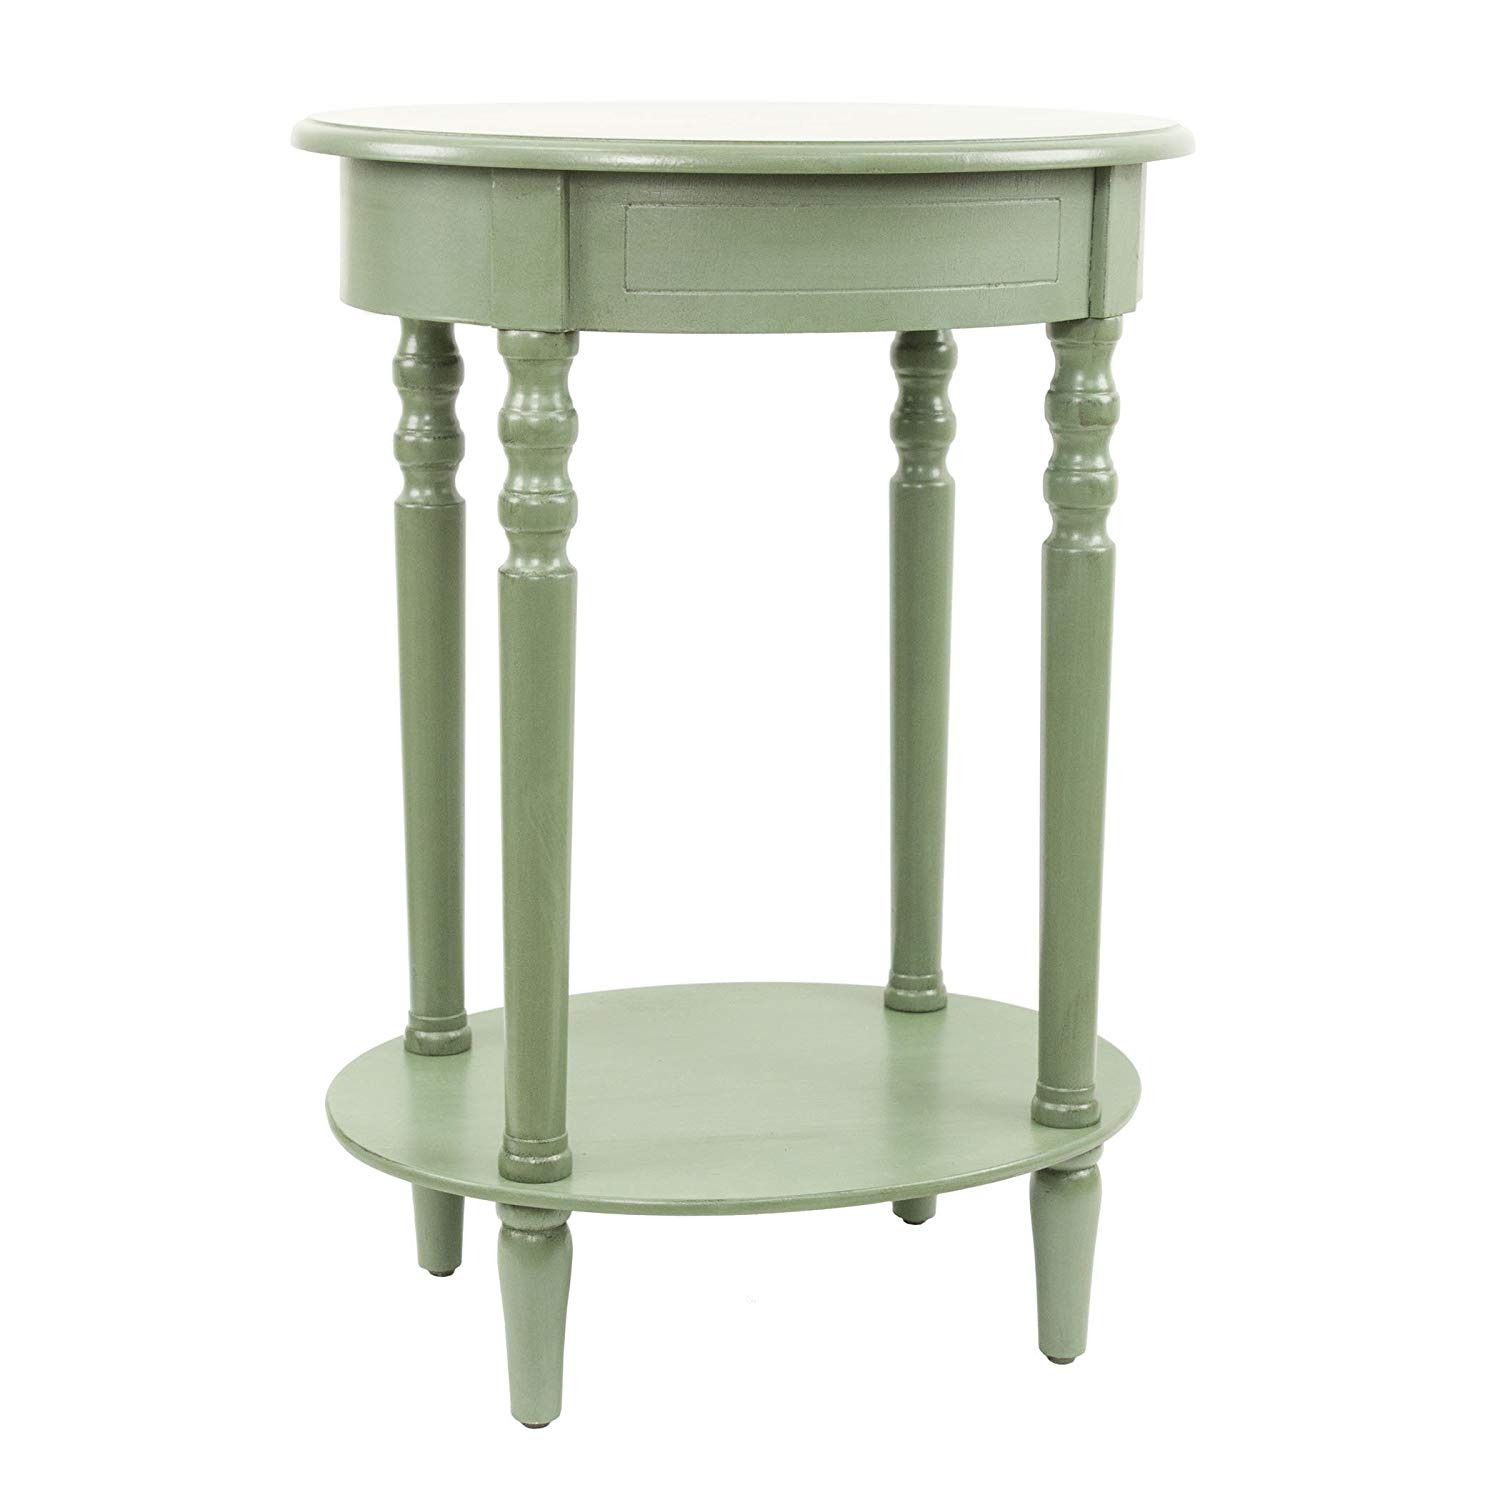 decor therapy simplify oval accent table antique green kitchen dining barn seater patio set white mirrored console waterford lamps dresser black lamp base wooden chair legs foyer